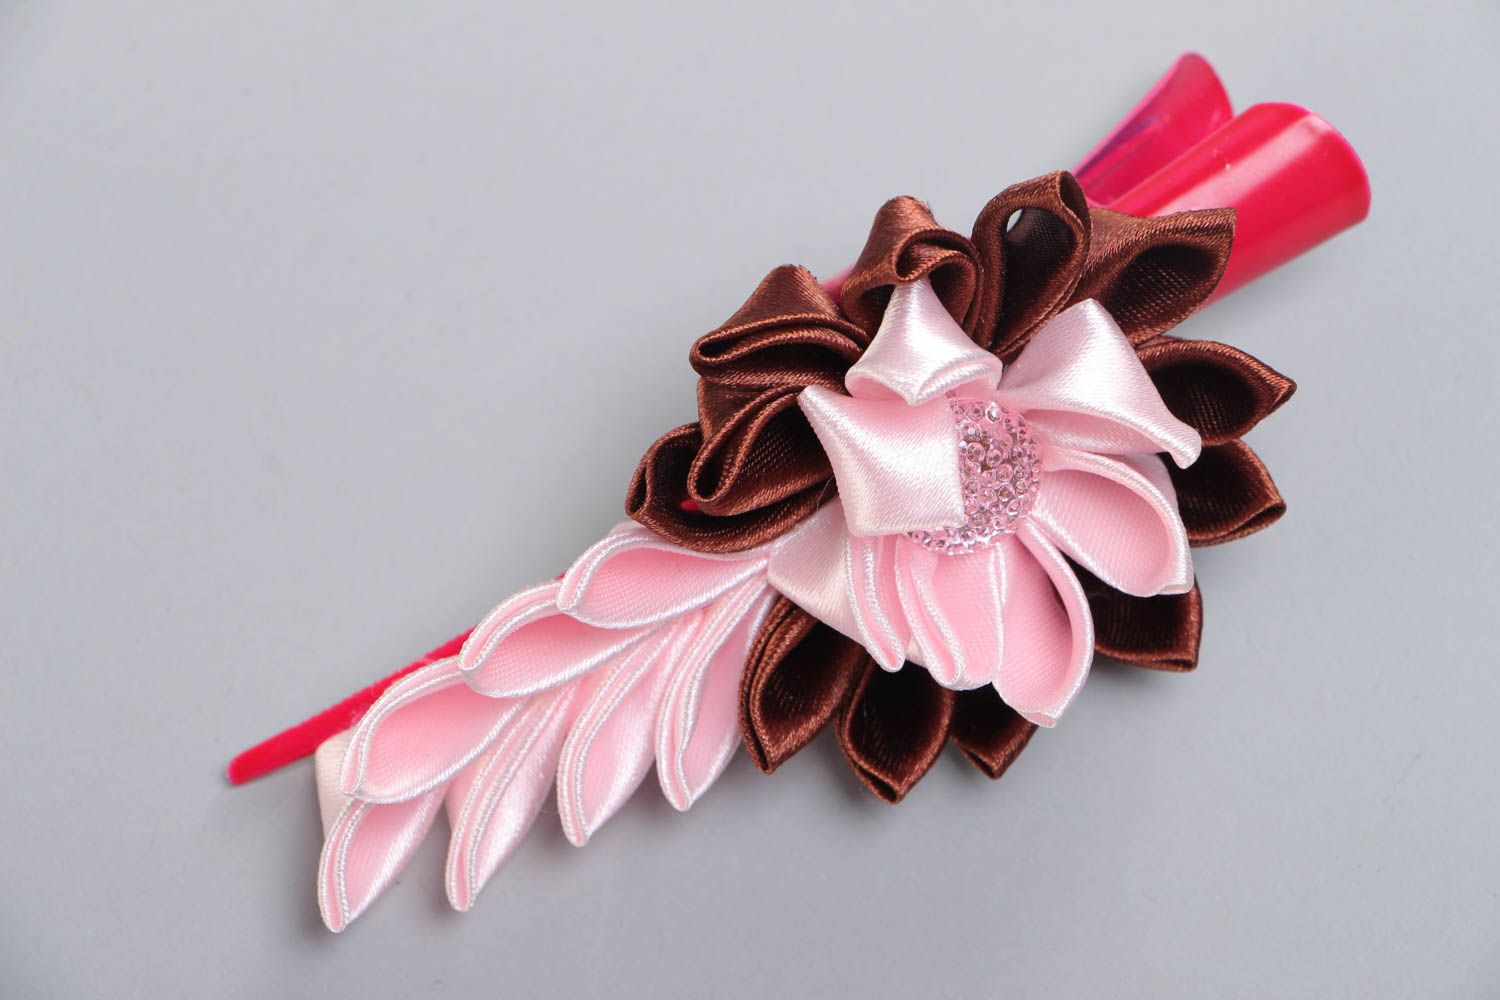 Handmade hair clip with satin ribbon kanzashi flower in pink and brown colors photo 2